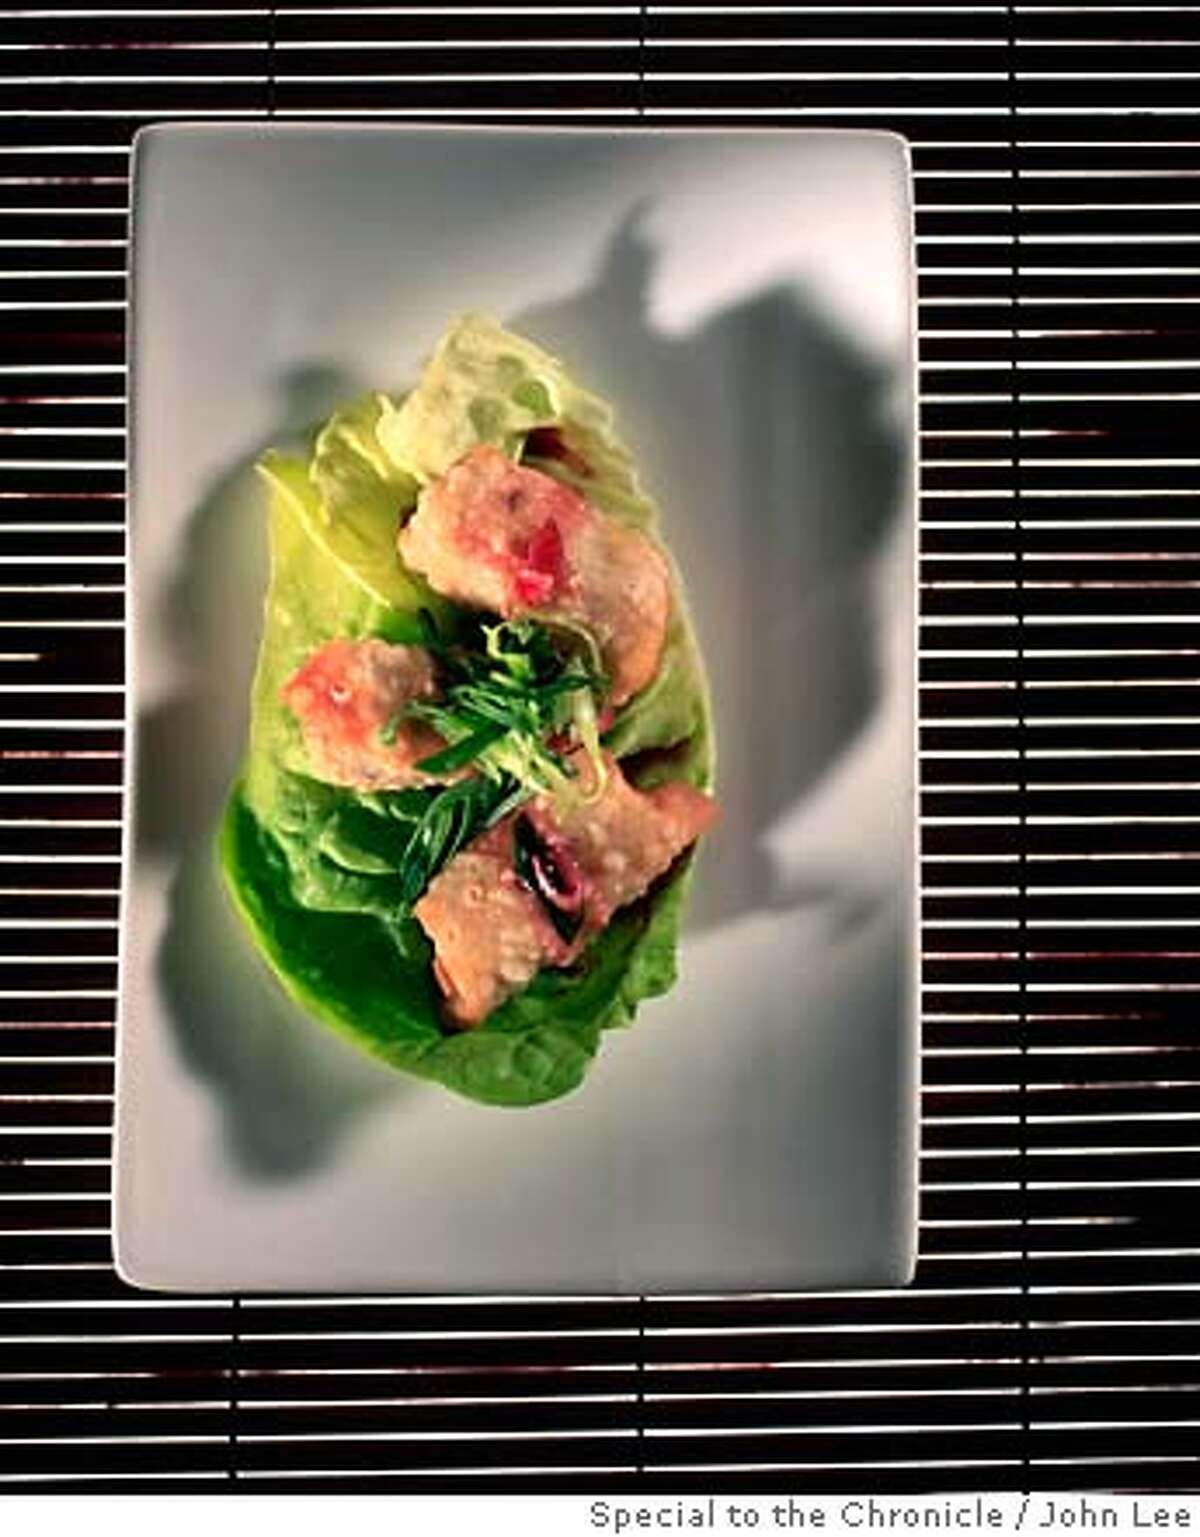 SEASONAL07_01JOHNLEE.JPG Mushroom and duck confit spring rolls. By JOHN LEE/SPECIAL TO THE CHRONICLE